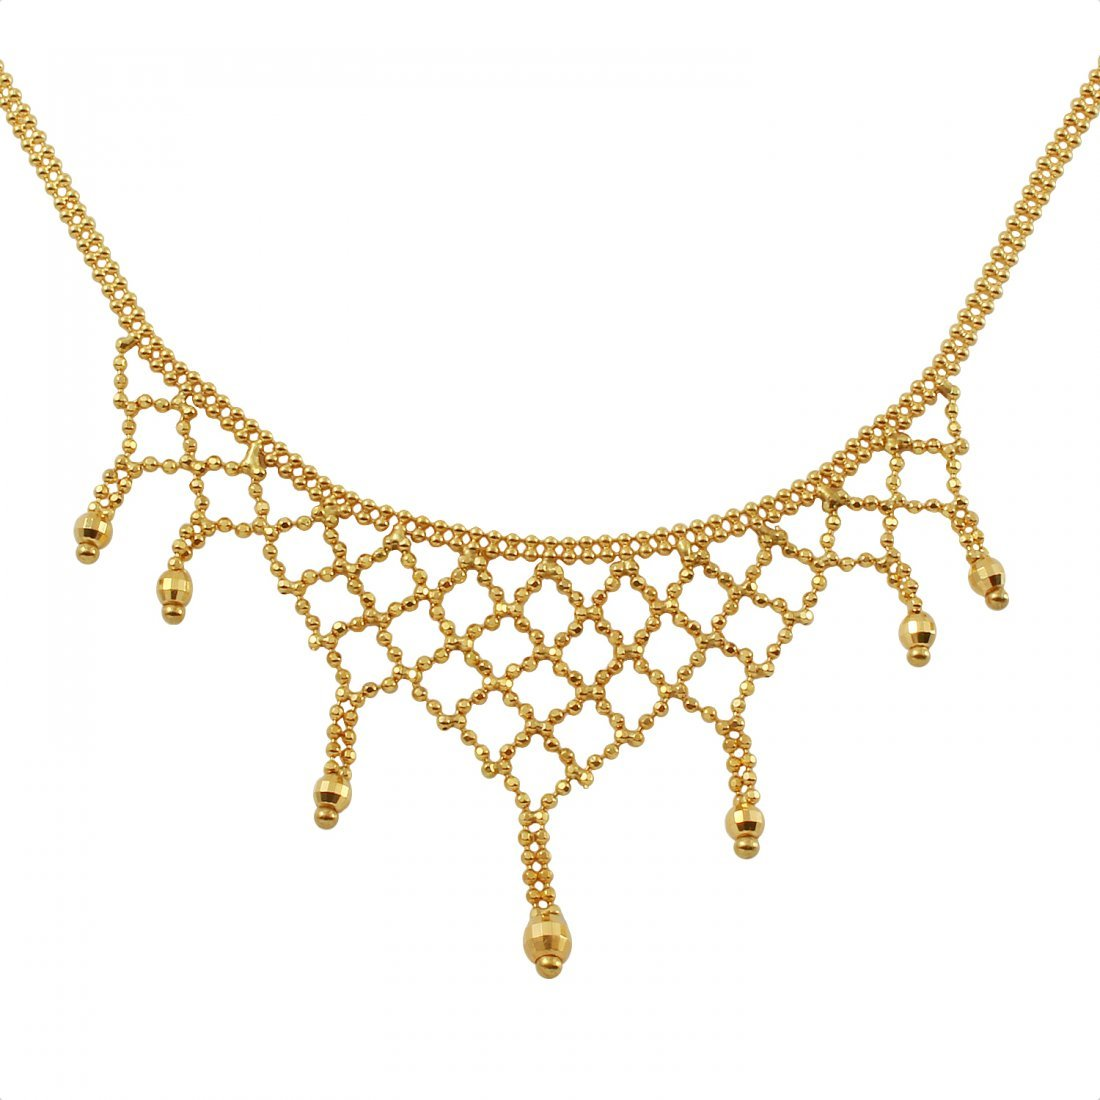 Ladies 18k Yellow Gold Necklace